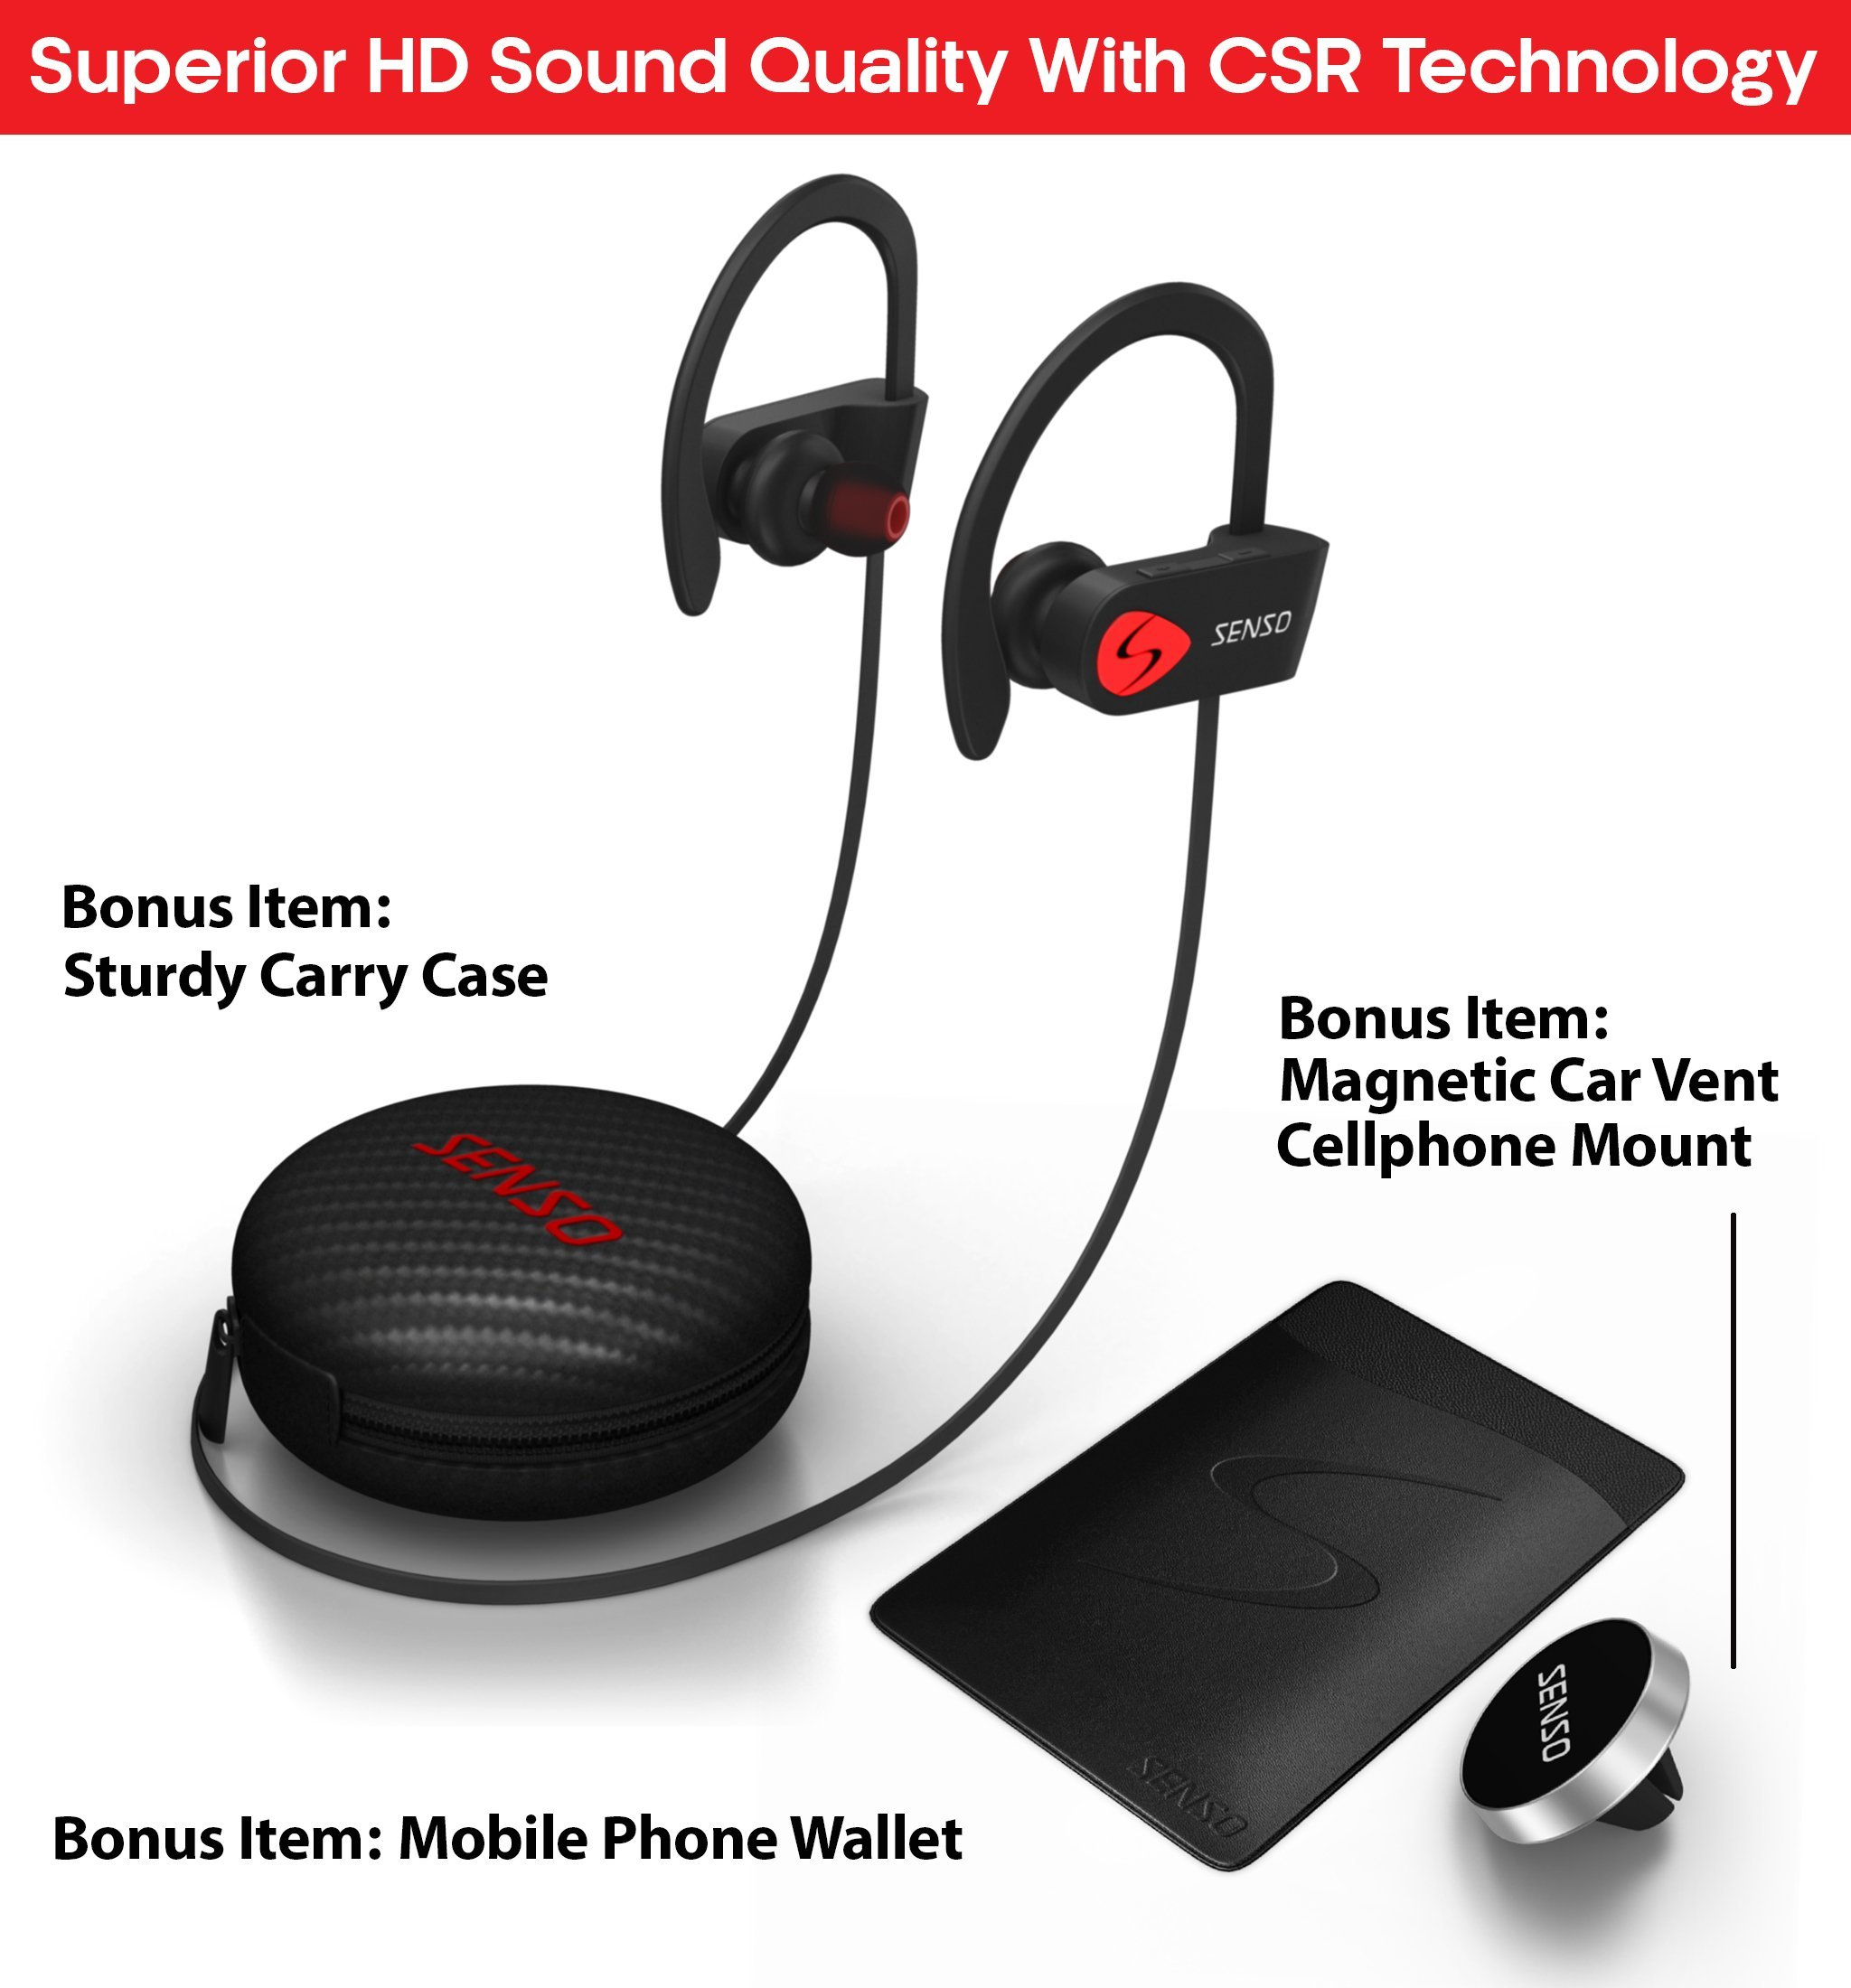 SENSO Bluetooth Headphones, Best Wireless Sports Earphones w/Mic IPX7 Waterproof HD Stereo Sweatproof Earbuds for Gym Running Workout 8 Hour Battery Noise Cancelling Headsets by Senso (Image #2)